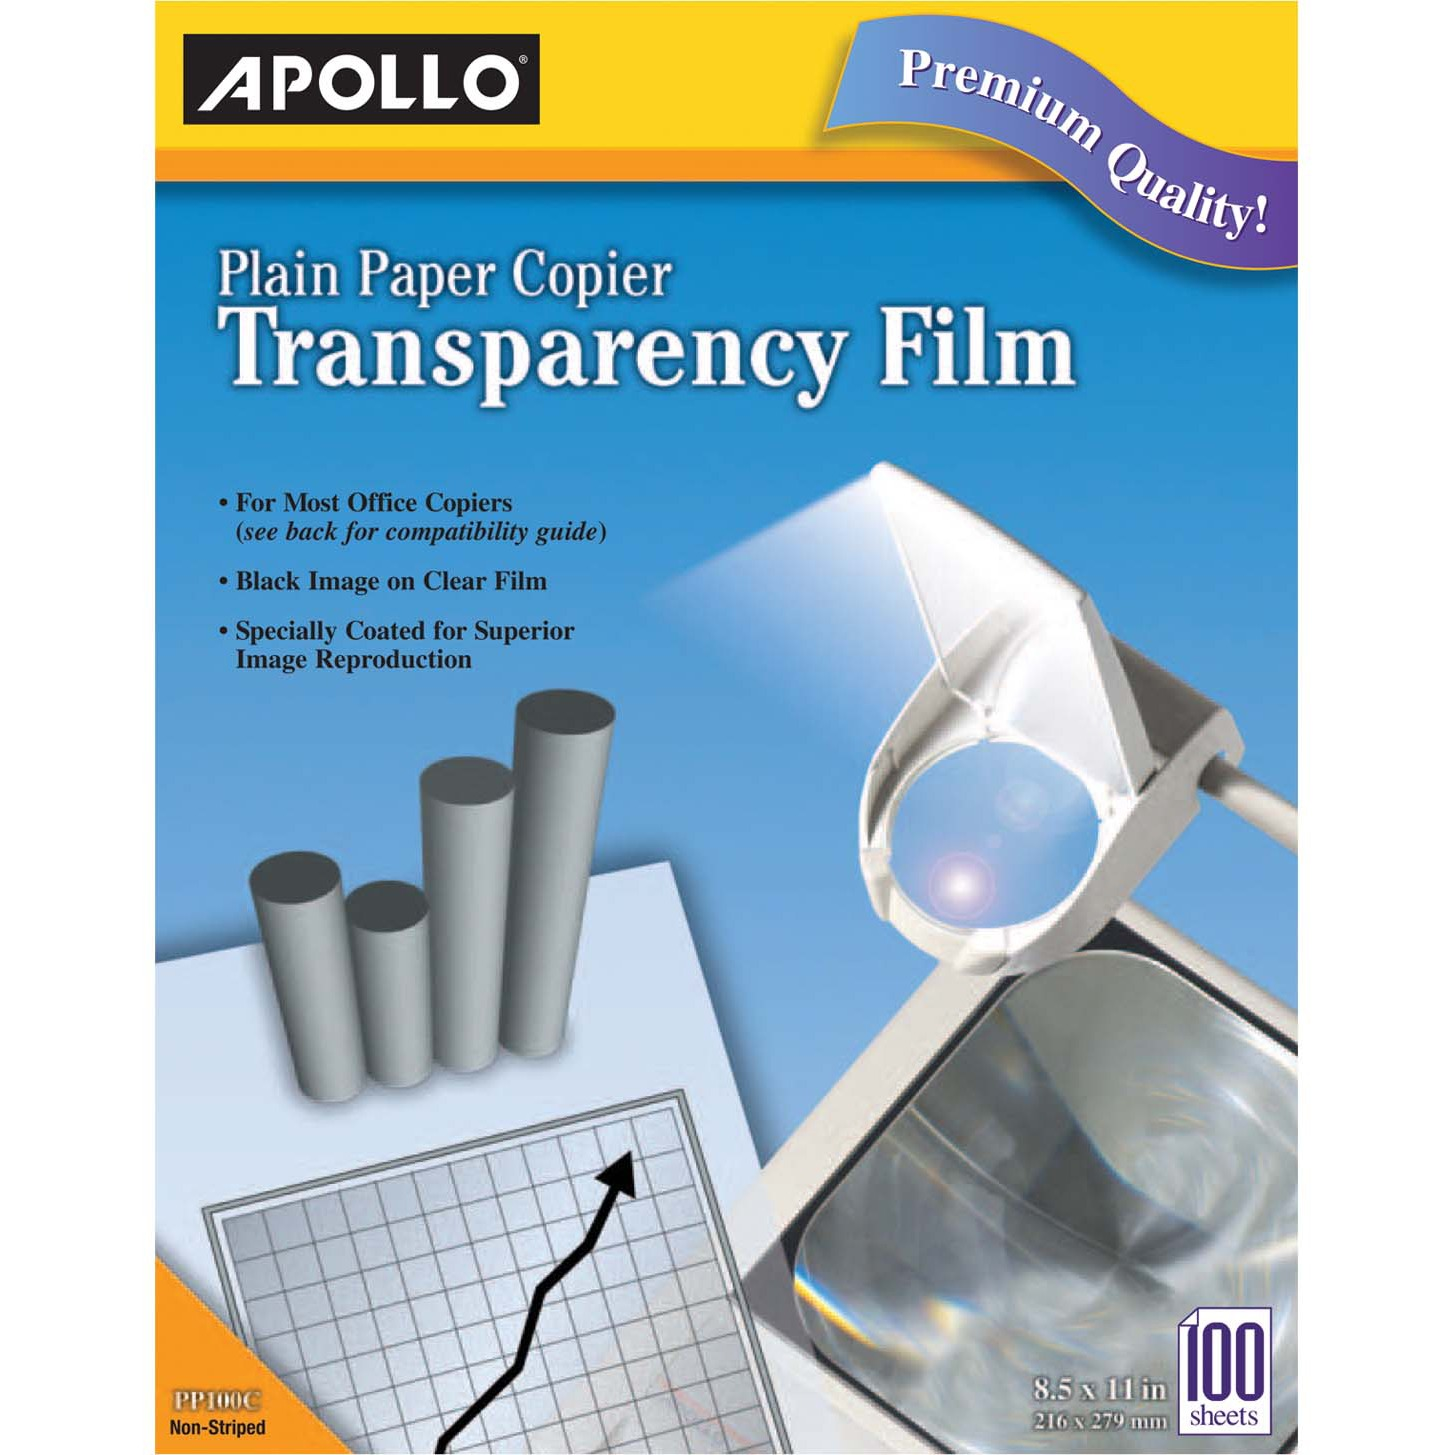 Apollo Plain Paper B/W Laser Transparency Film w/Handling Strip, Letter, Clear, 100/Box